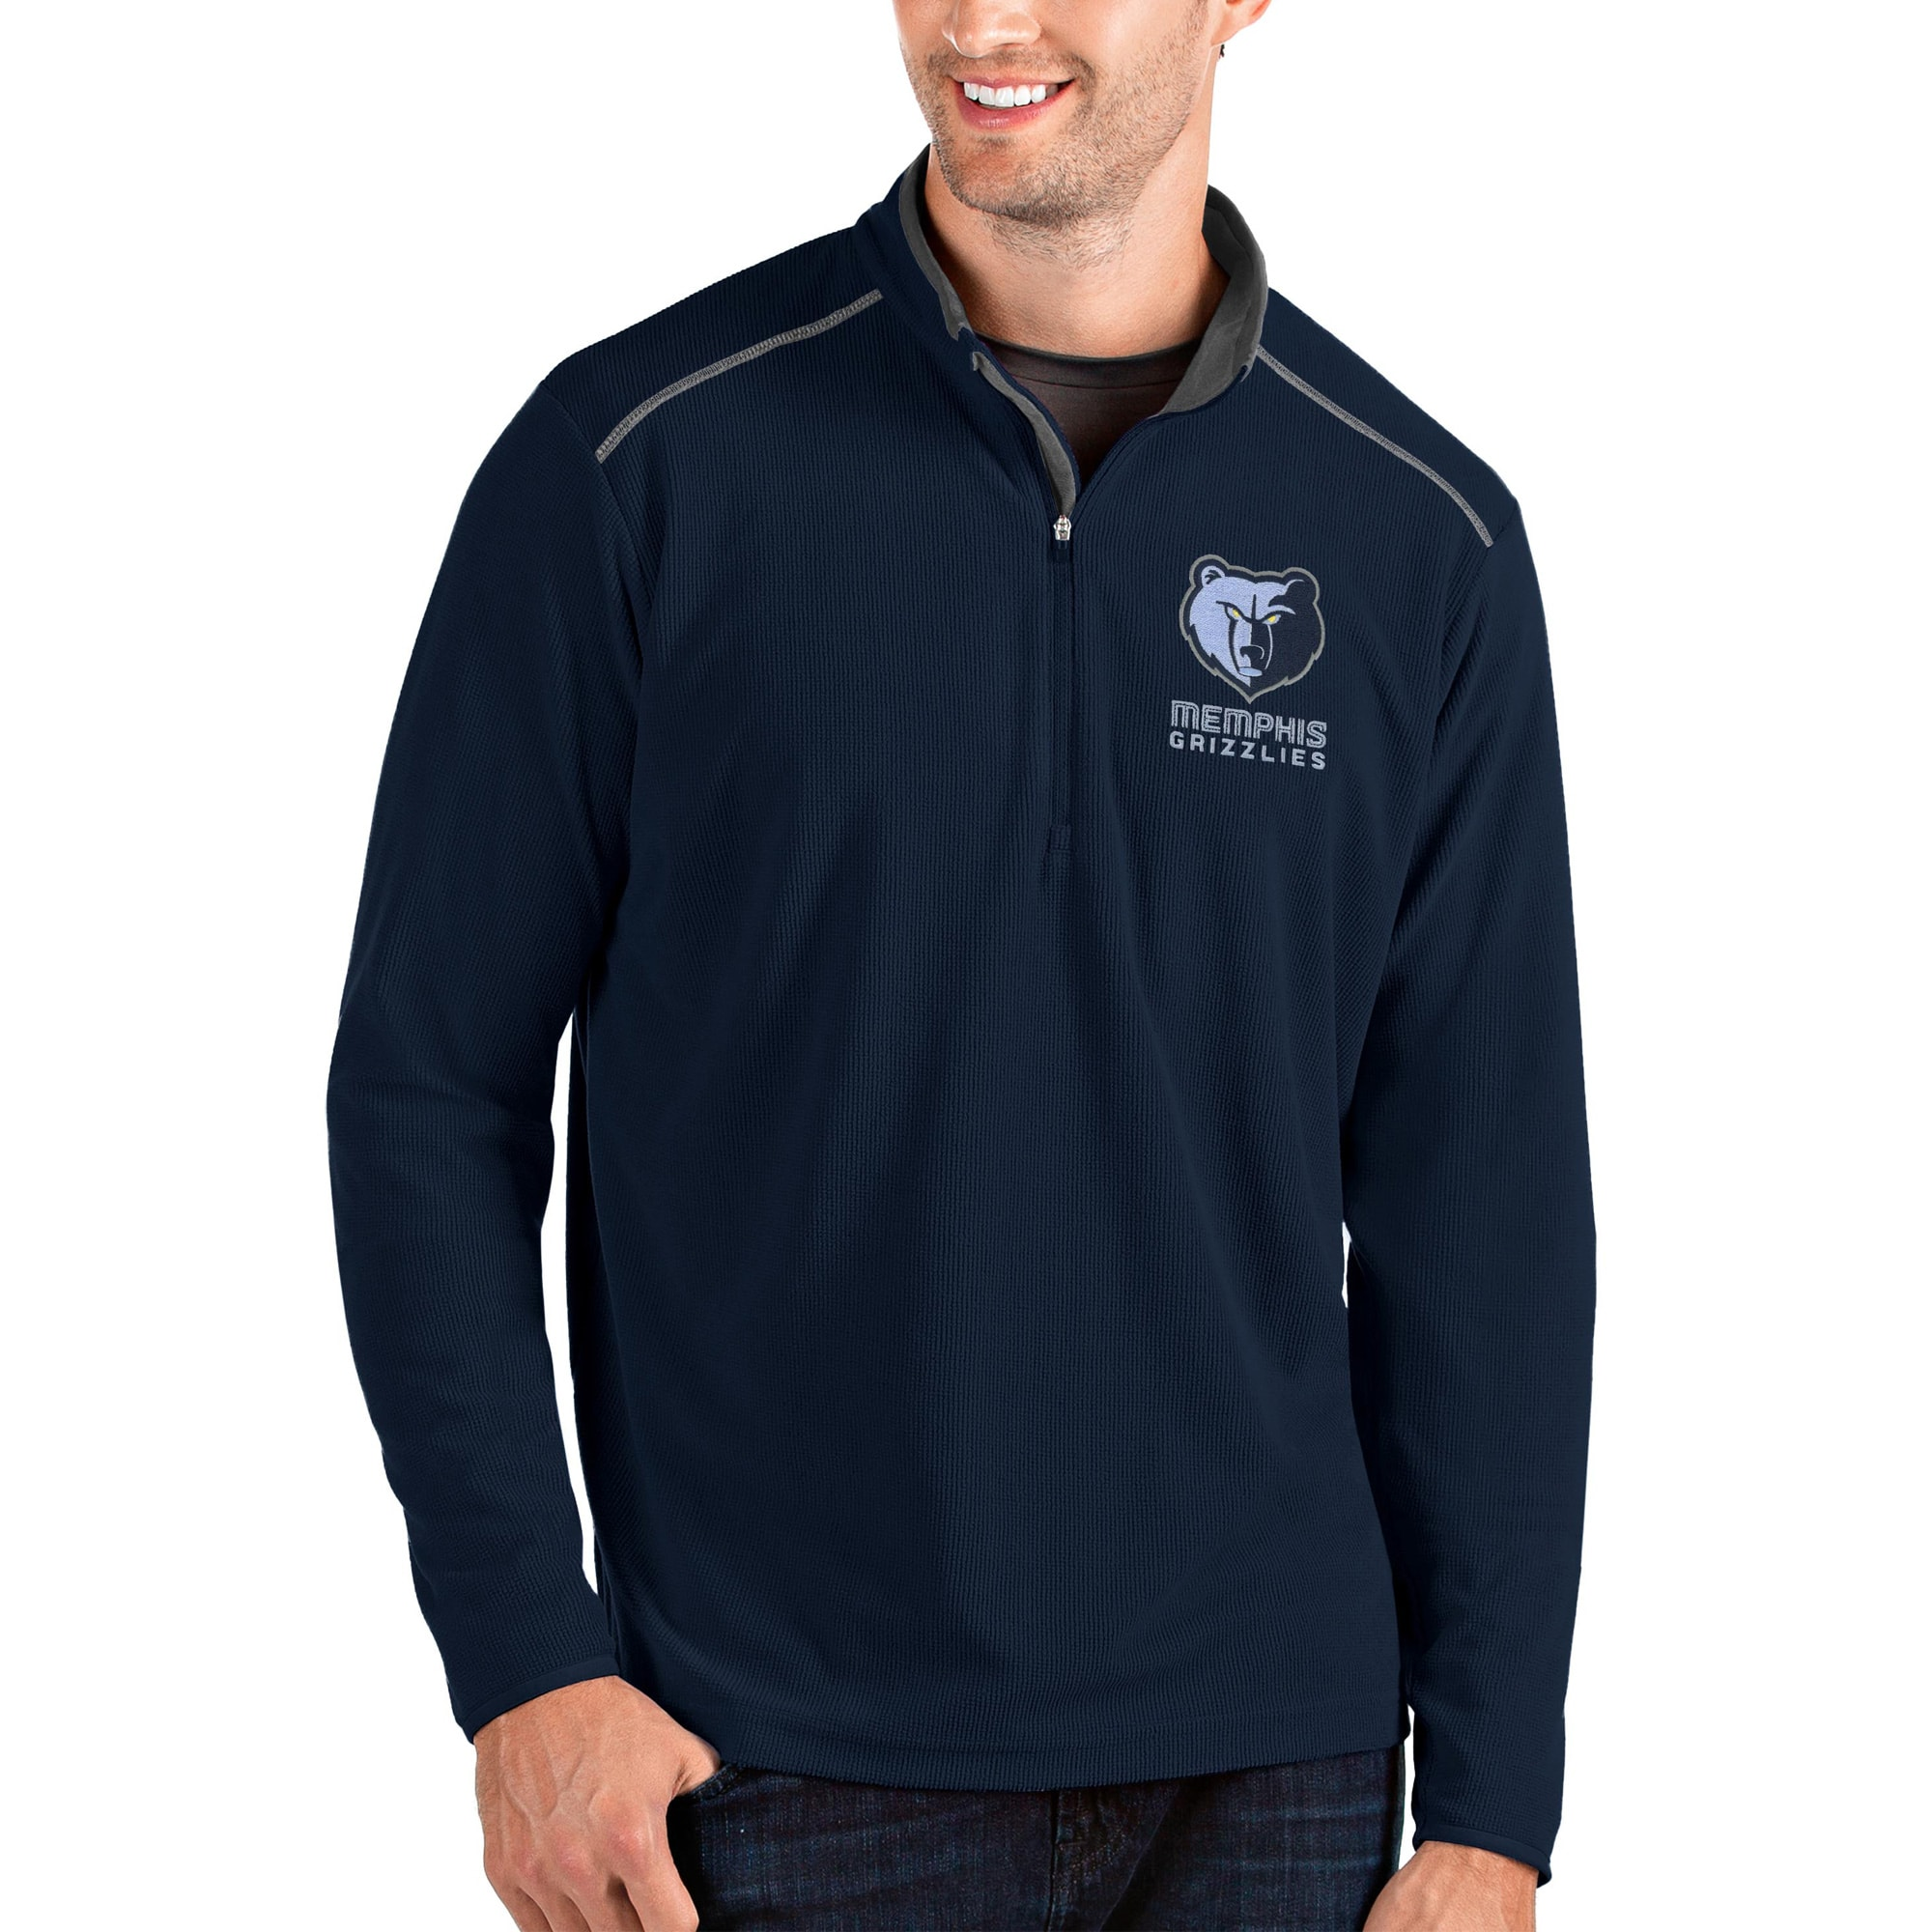 Memphis Grizzlies Antigua Glacier Quarter-Zip Pullover Jacket - Navy/Gray